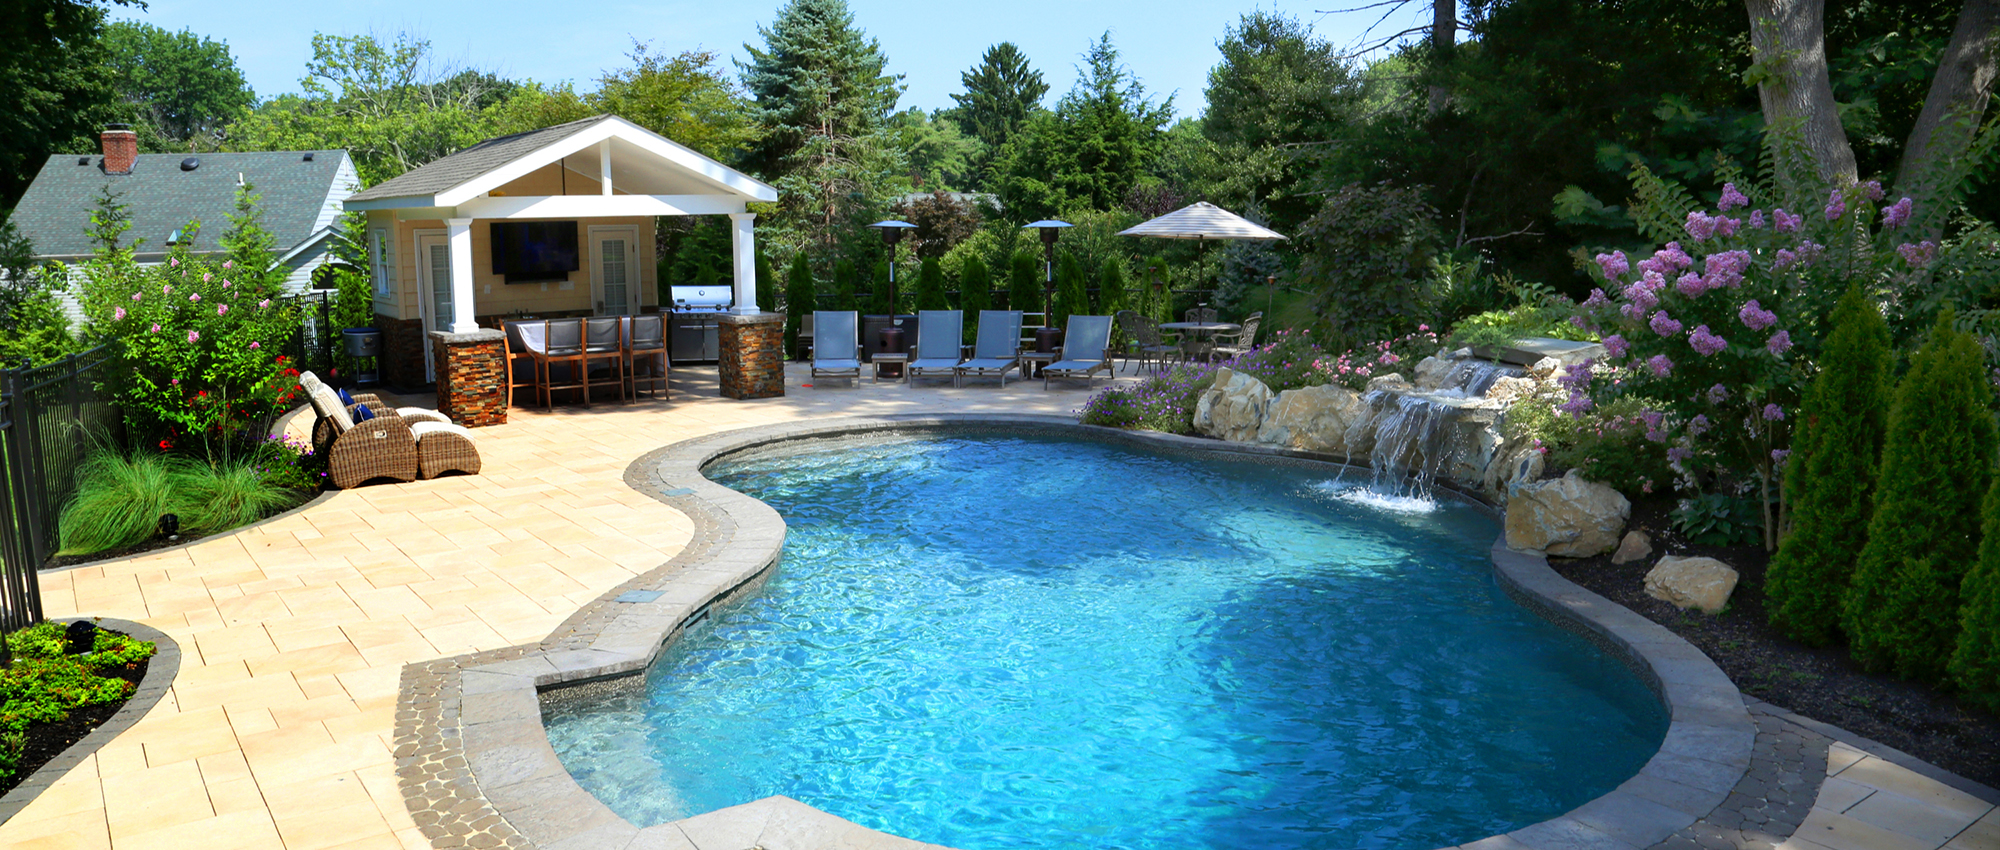 Natural pool with paver patio cabana and outdoor TV and stone kitchen in Sands Point